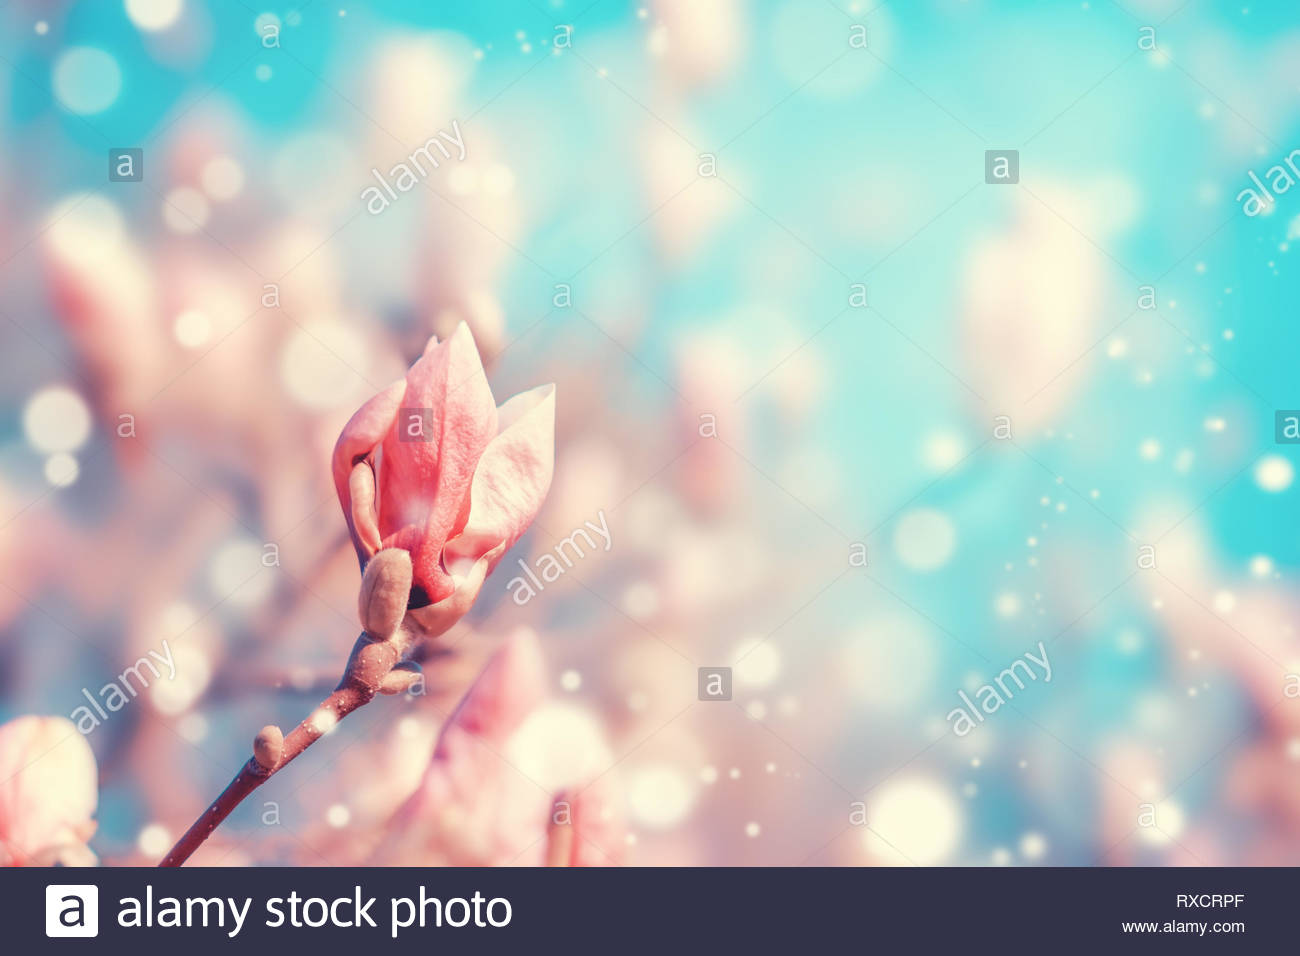 Pink magnolia tree flowers bud in spring. Nature floral blossoming background with glitters and copy space. Pastel pink and blue colors. Stock Photo